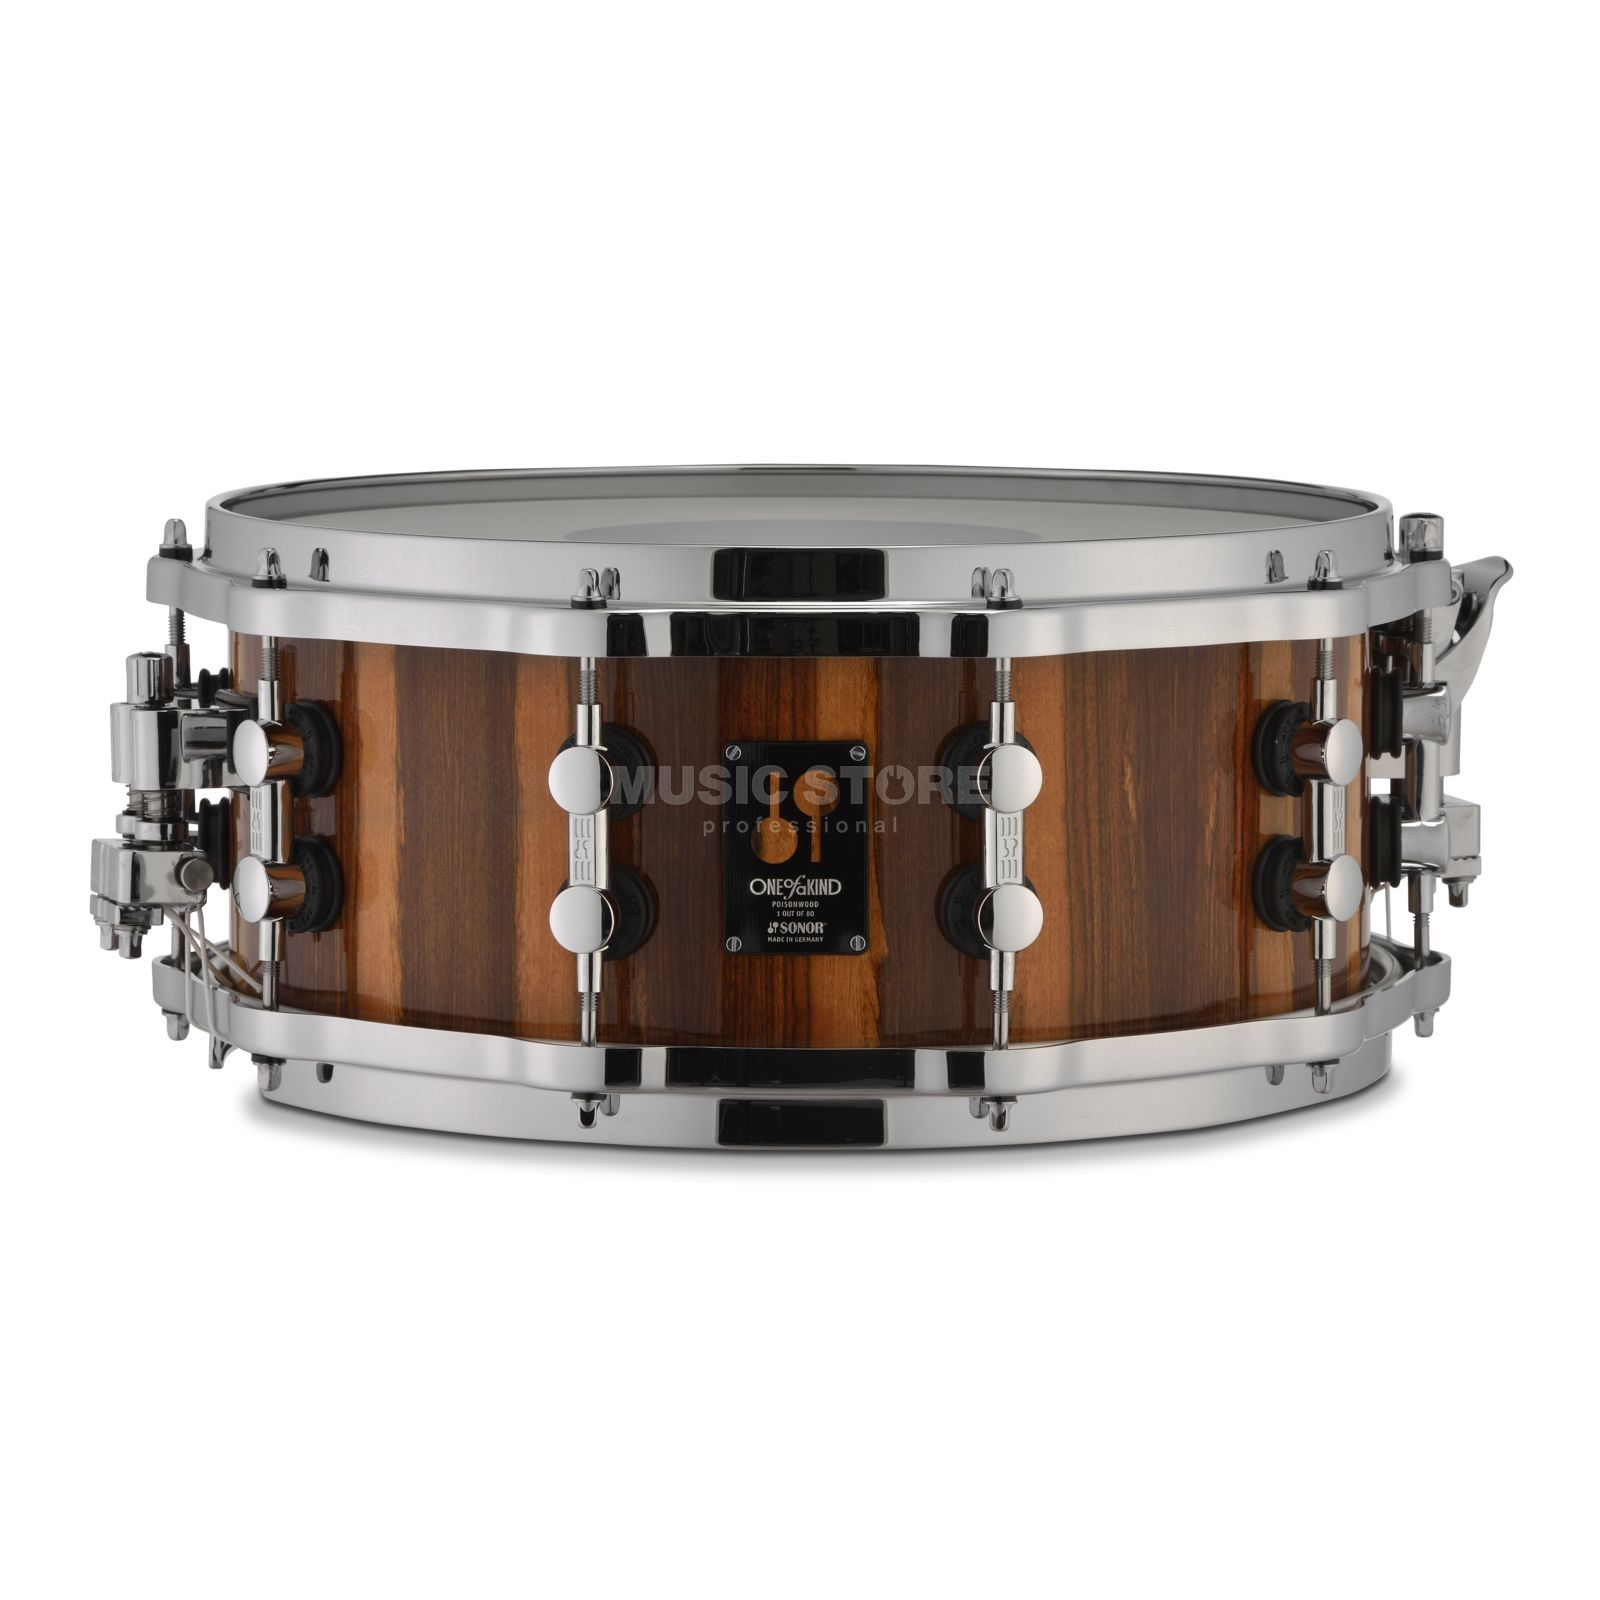 "Sonor One of a kind Snare 14""x6"", Poisonwood Produktbild"